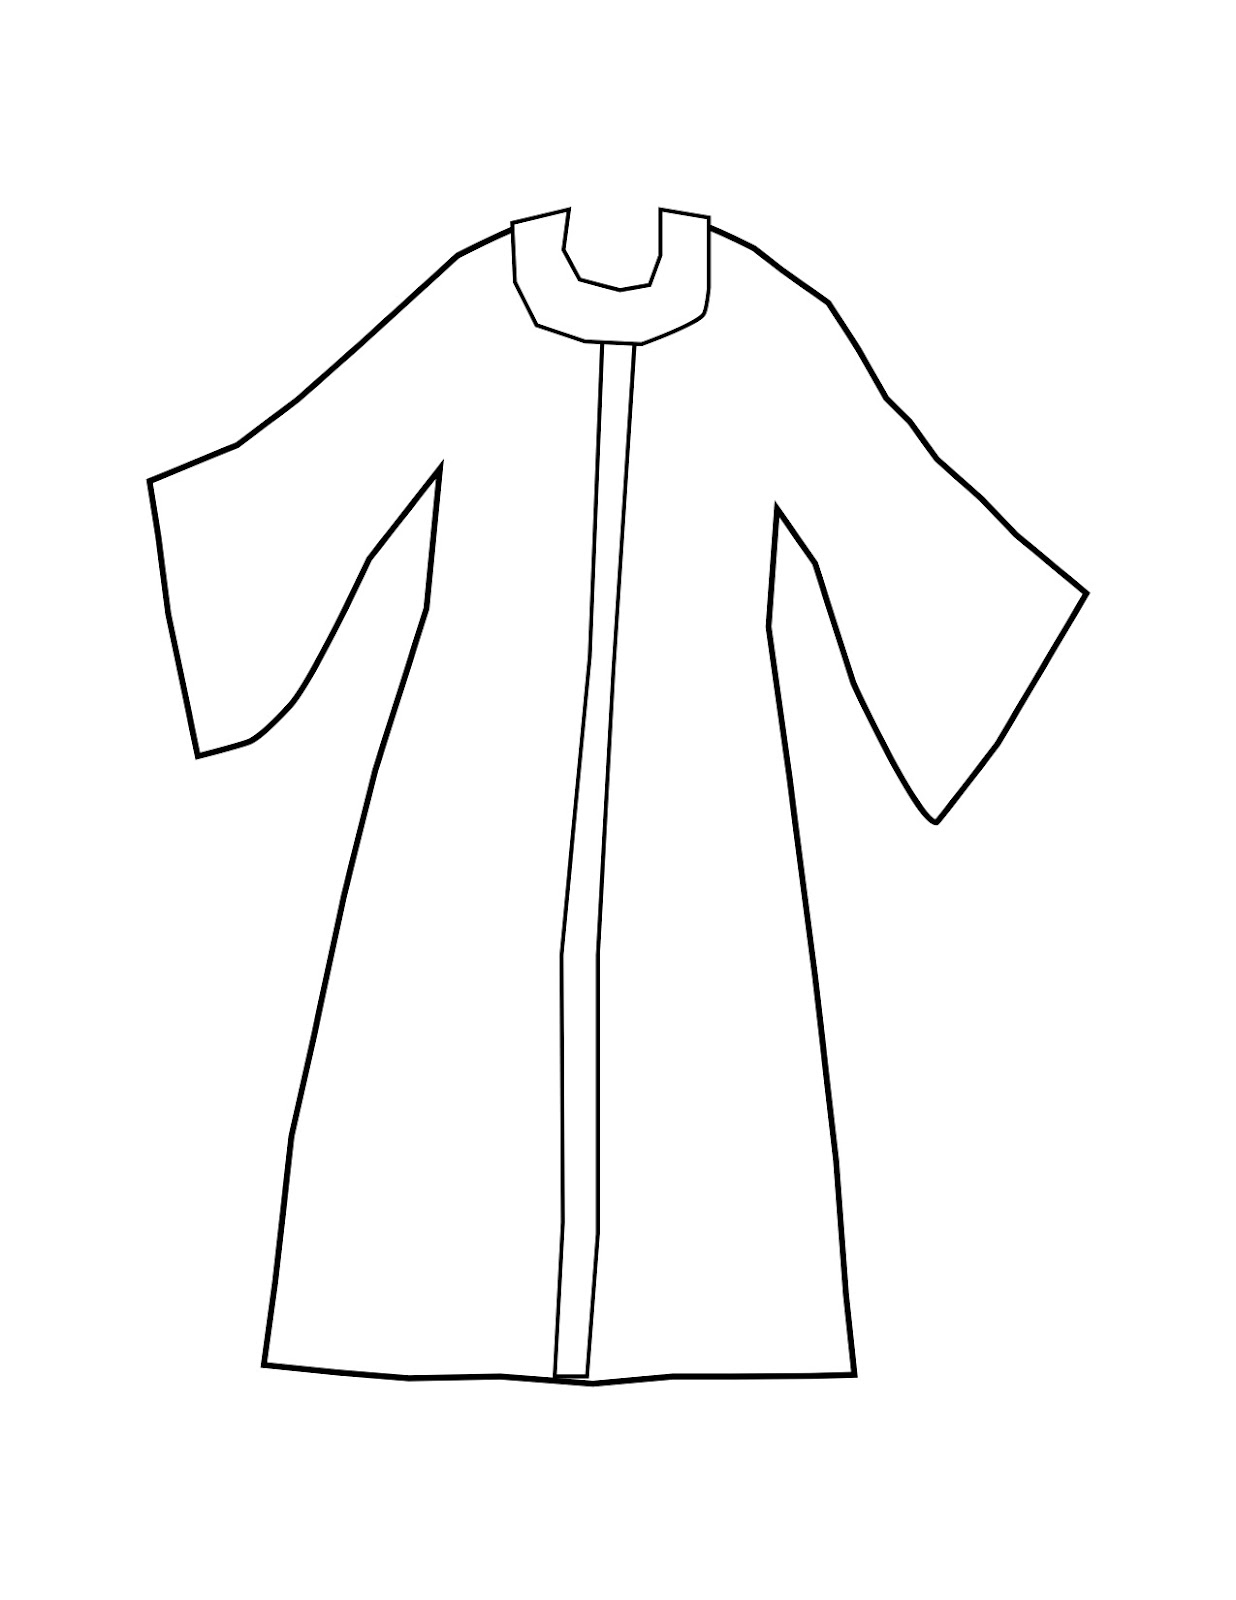 Charlotte's Clips and Kindergarten Kids: Joseph's Coat of